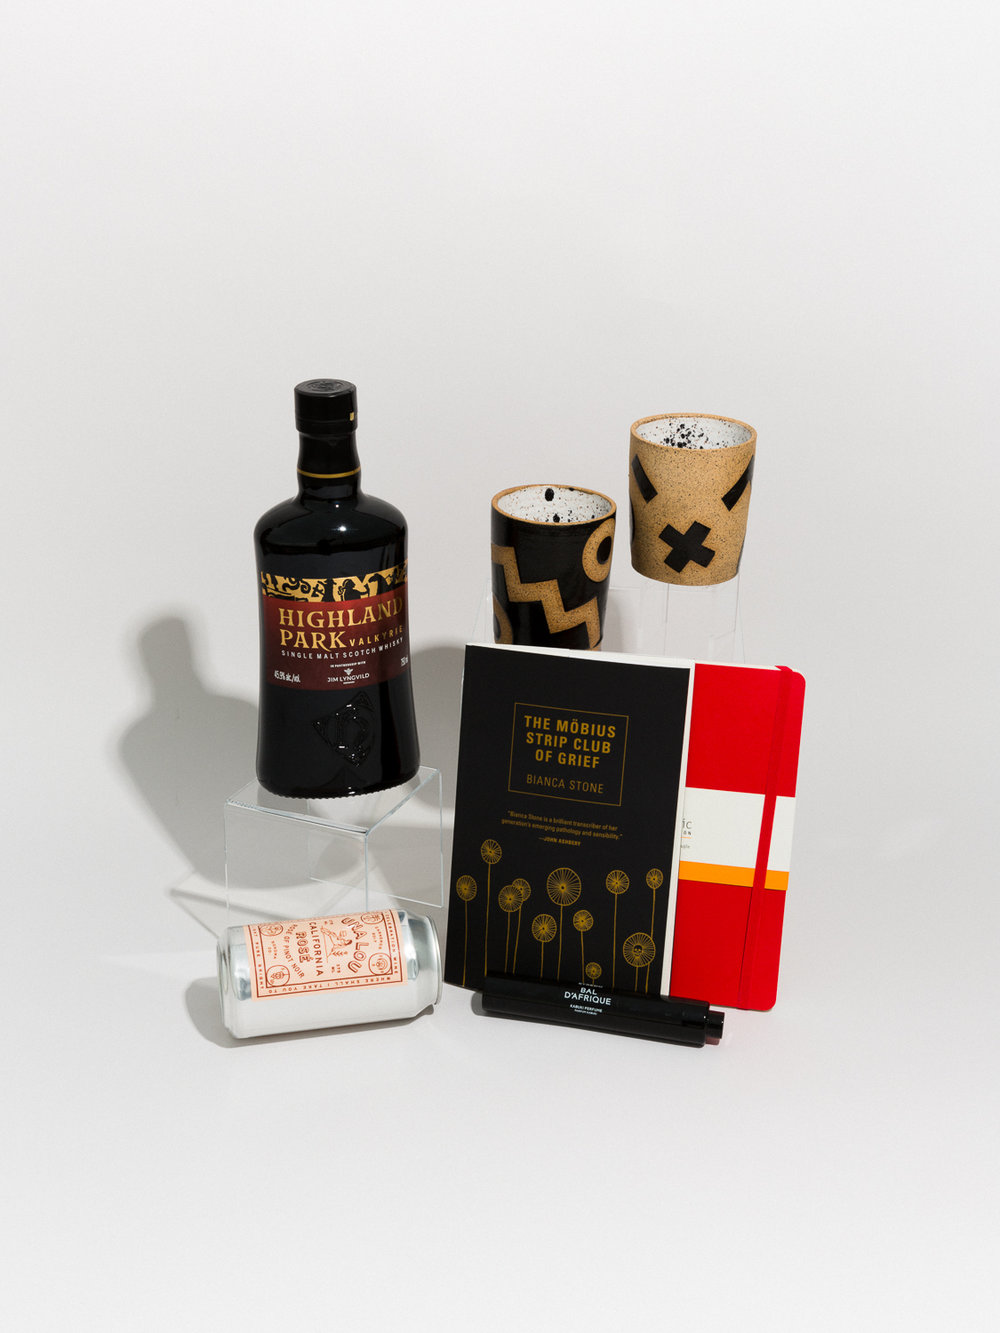 HIGHLAND PARK  Valkyrie scotch whiskey,  RECREATION CENTER  ceramic tumblers,  THE MÖBIUS STRIP CLUB OF GRIEF  book of poems,  MOLESKINE  notebook,  BYREDO  kabuki perfume, and  UNA LOU ROSÉ  wine.